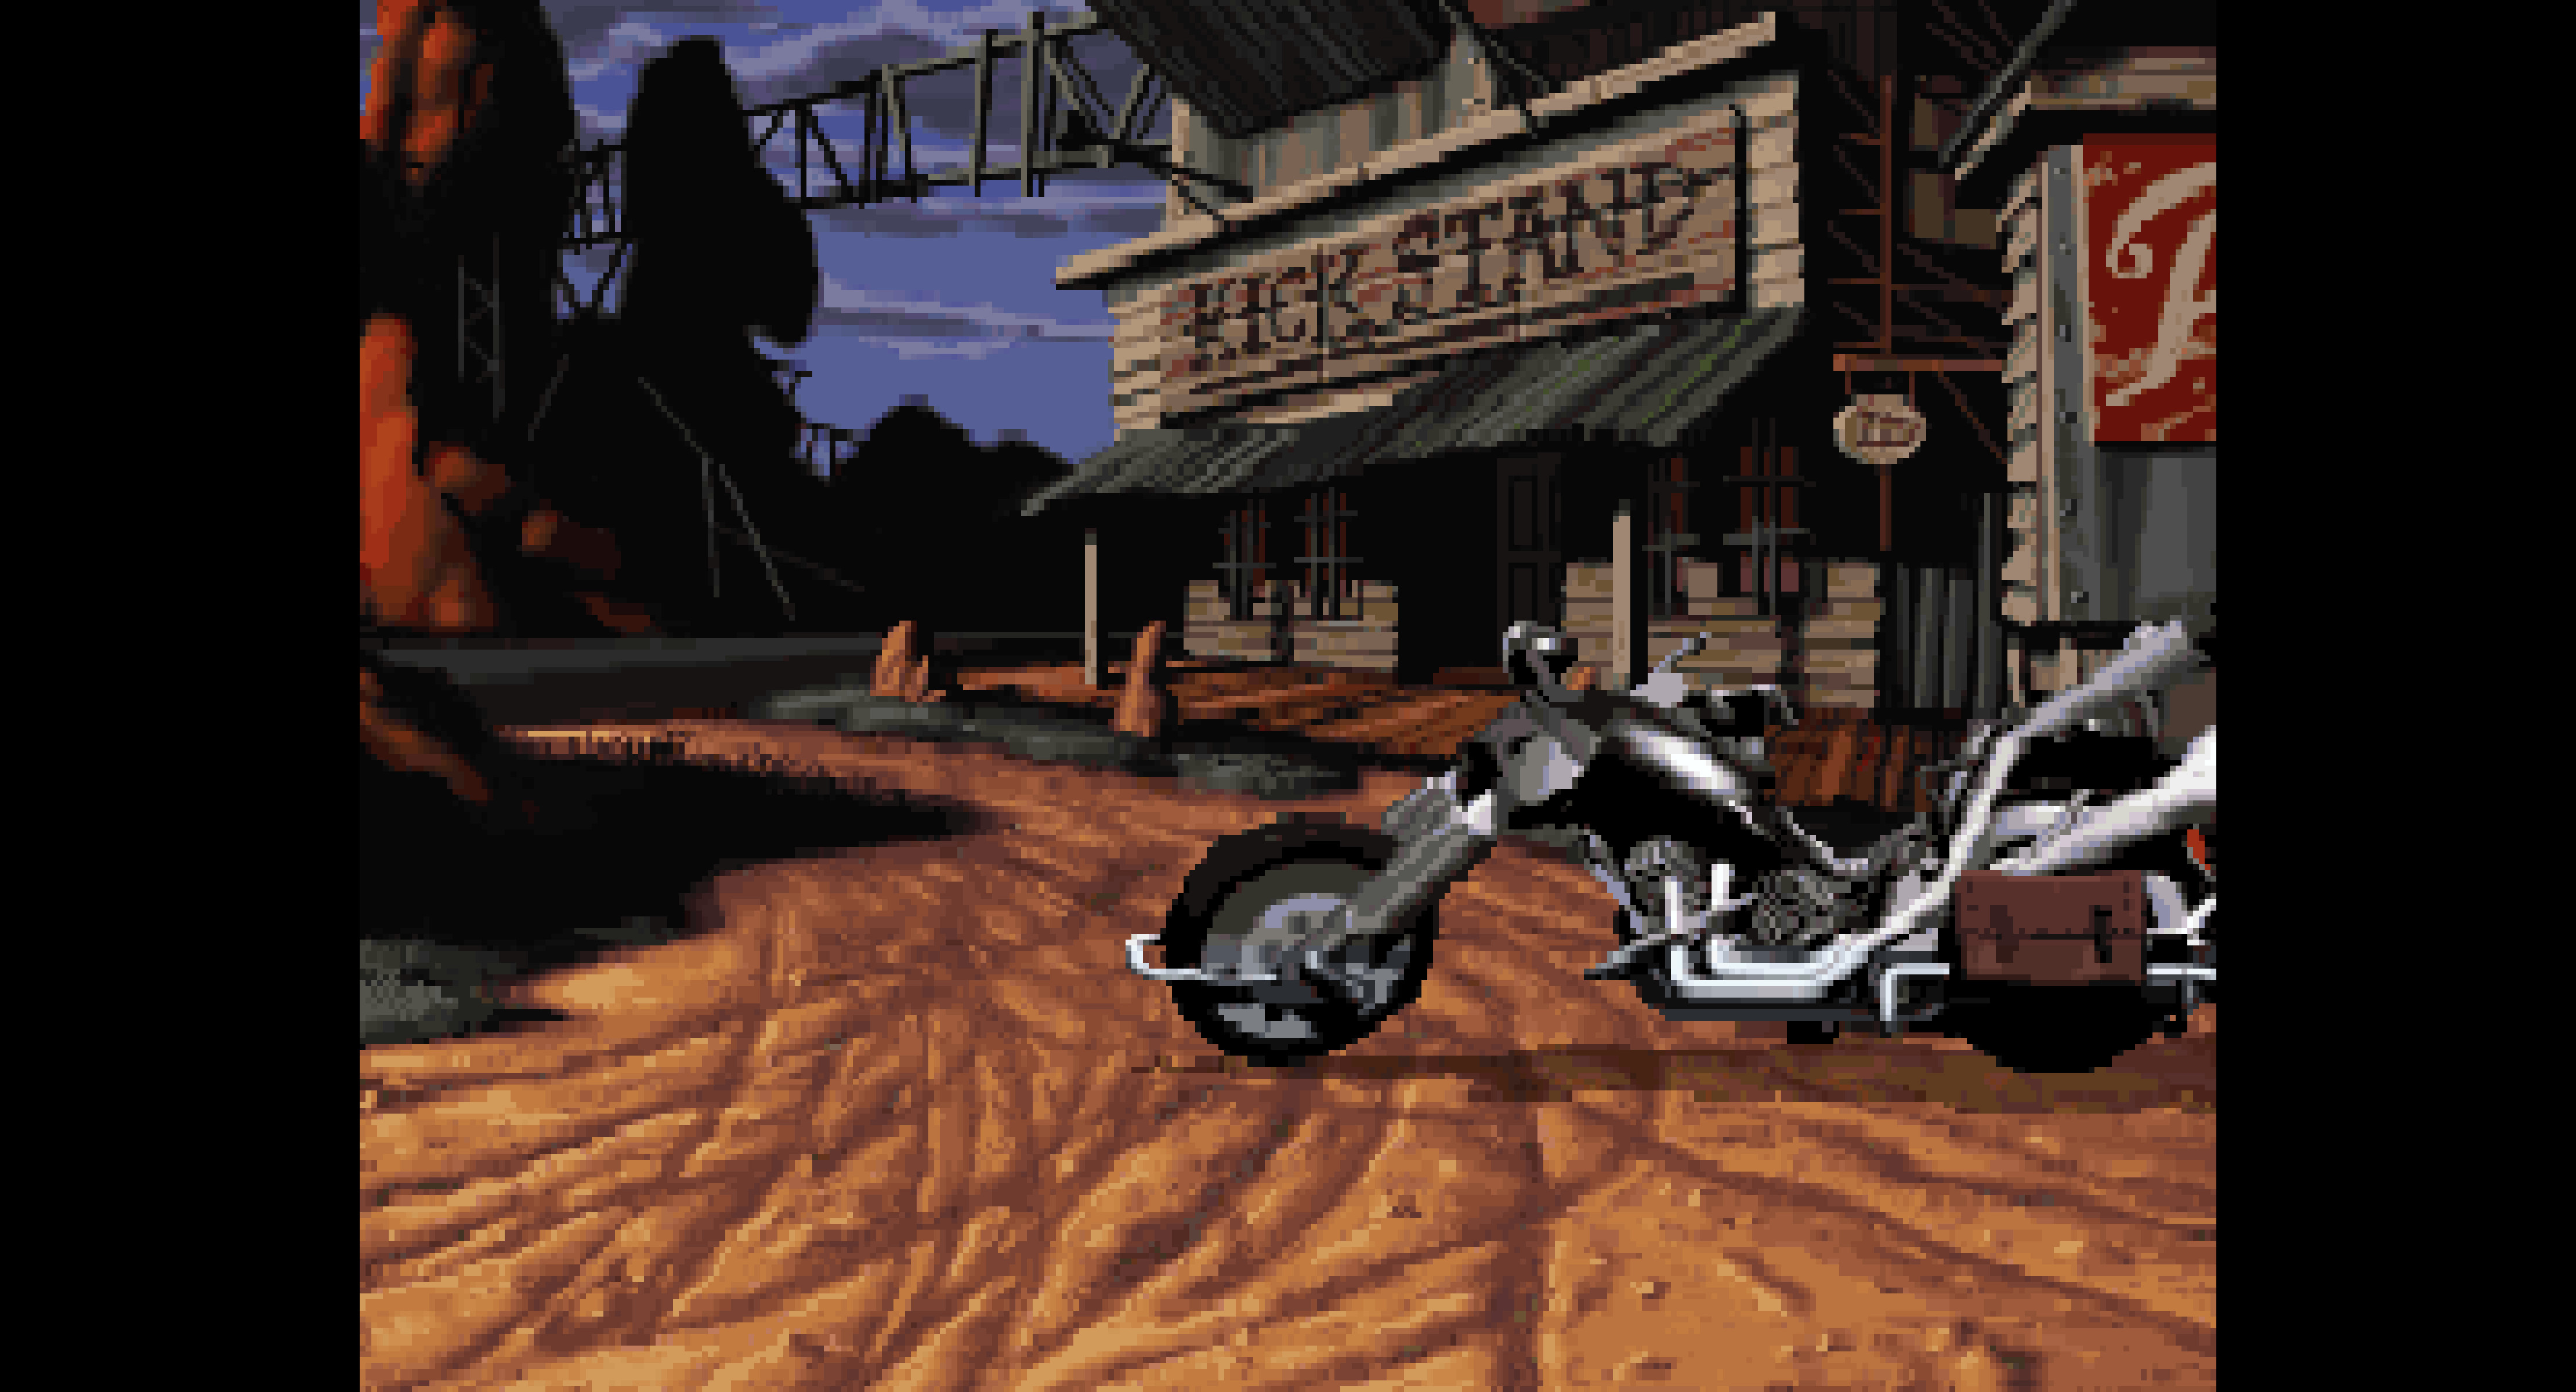 Full throttle images 57